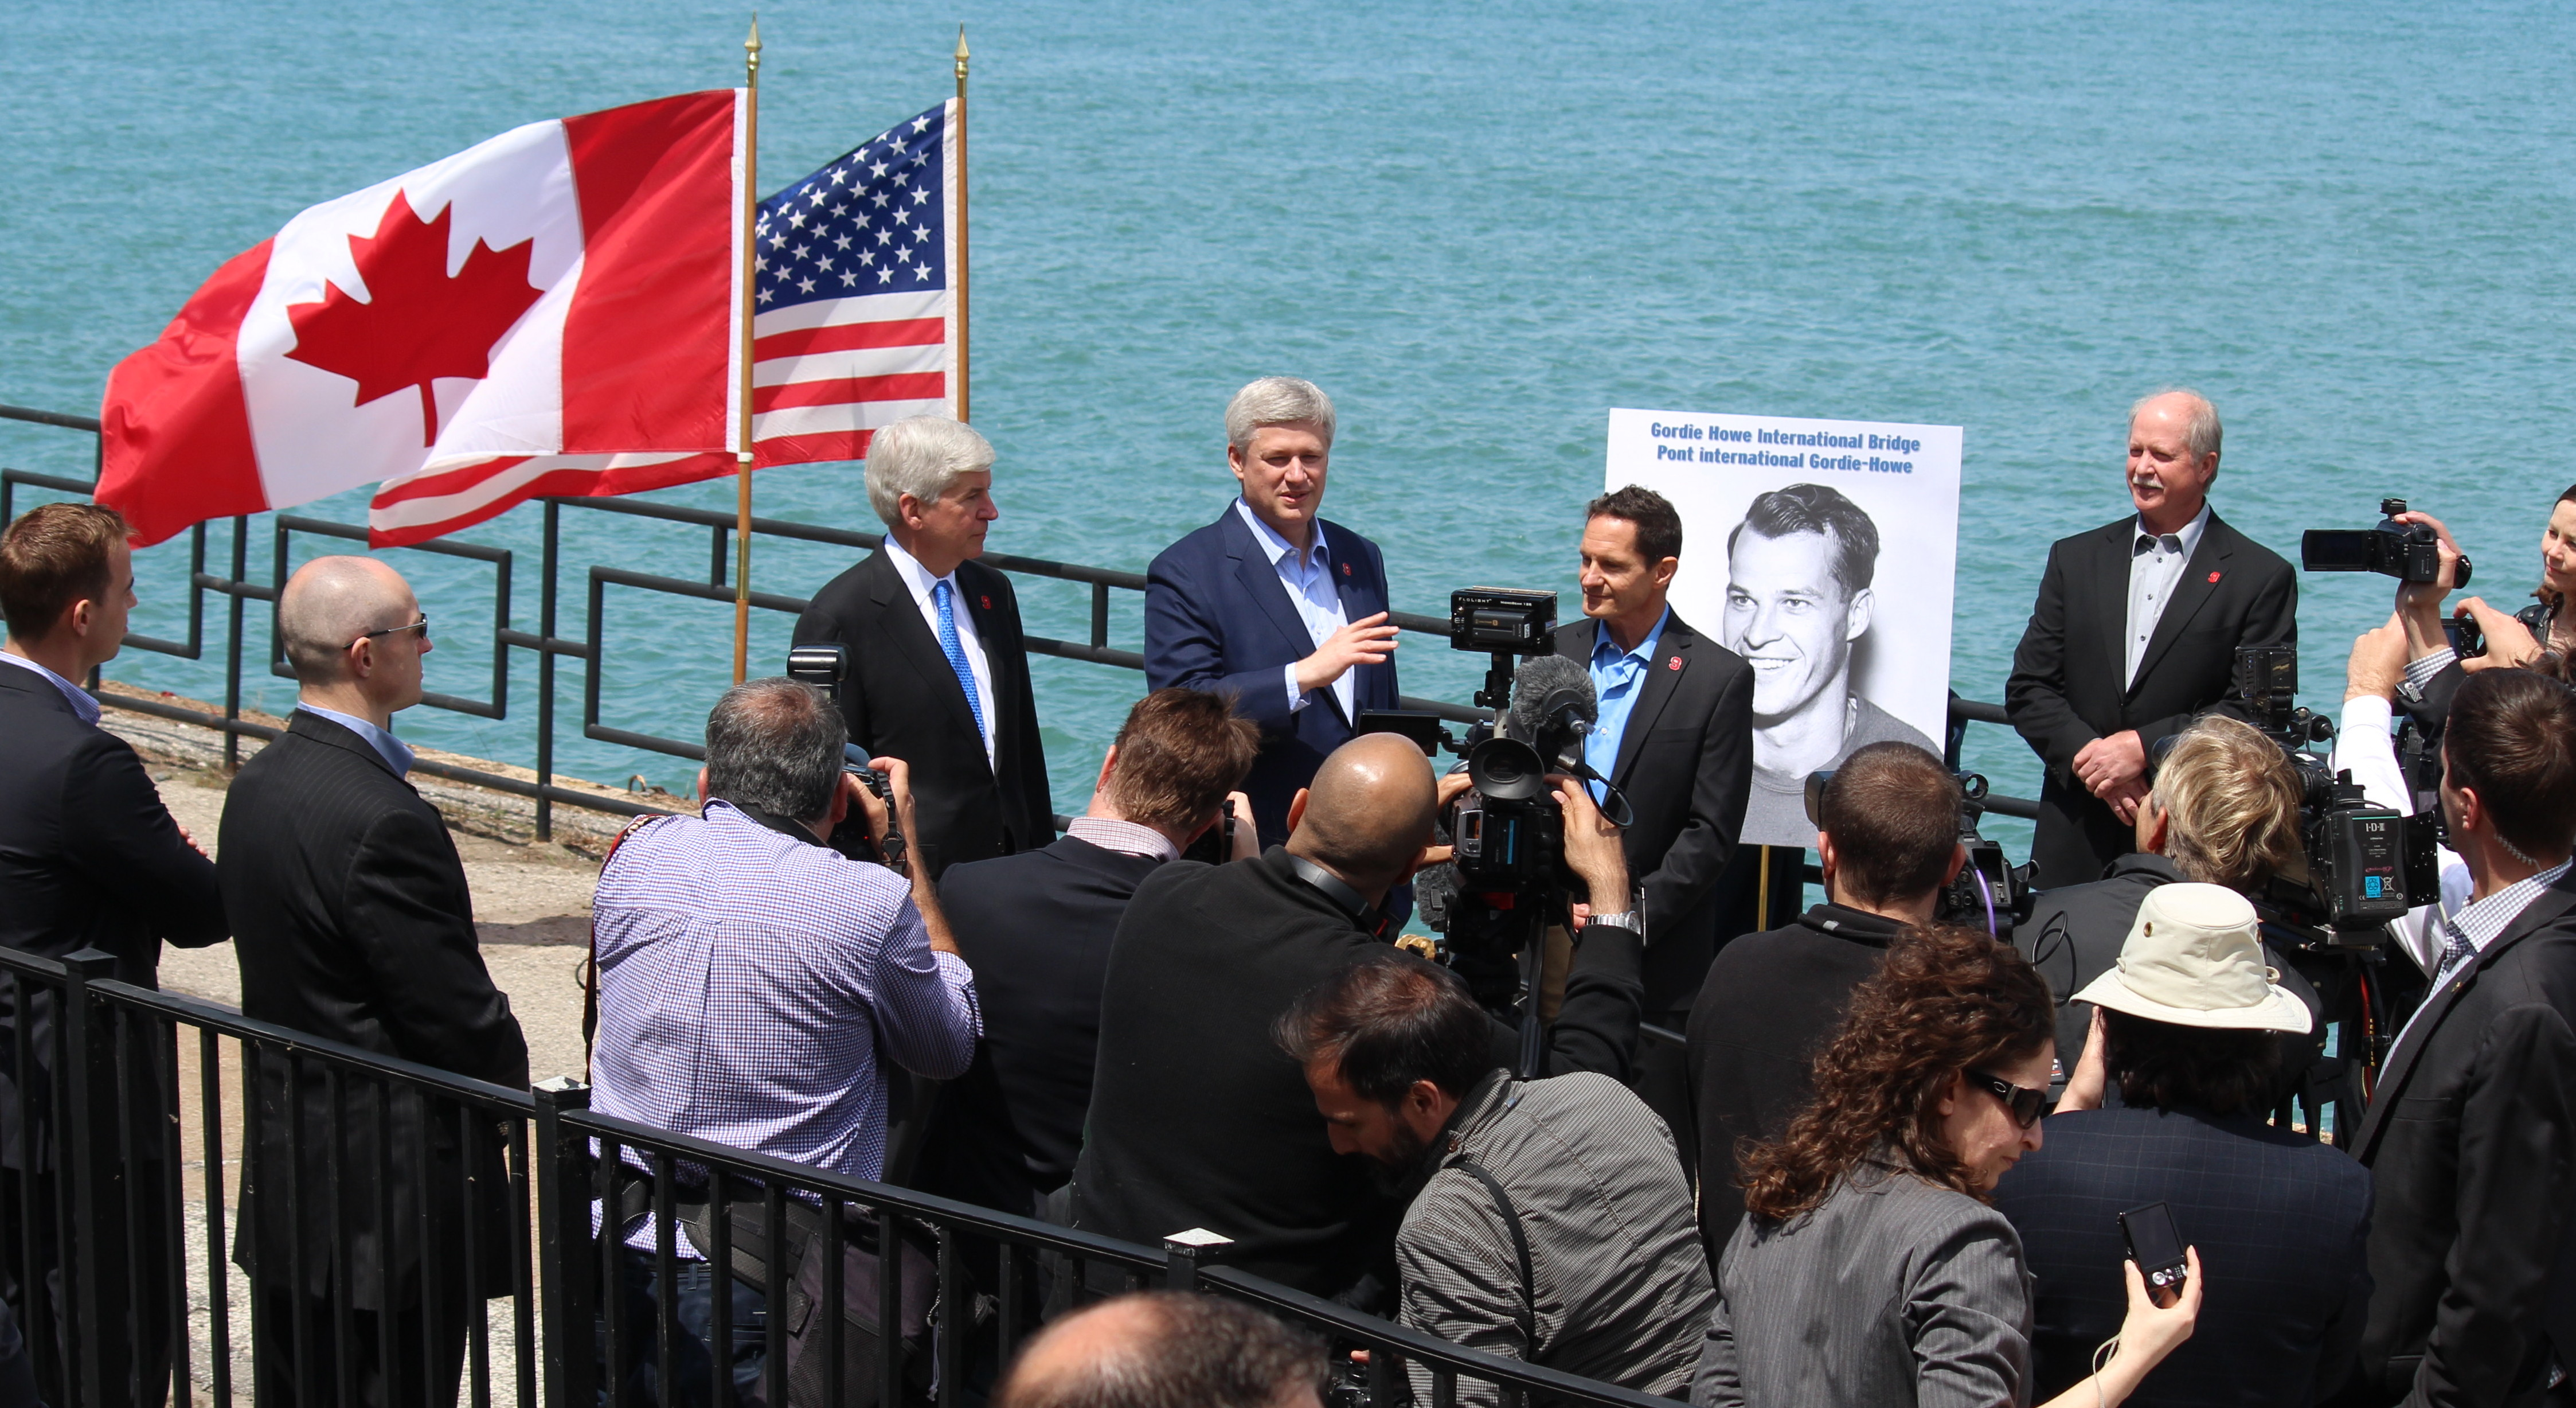 Prime Minister Stephen Harper, Michigan Gov. Rick Snyder and members of the Howe family unveil the name of Windsor-Detroit's new bridge, May 14, 2015. (Photo by Mike Vlasveld)